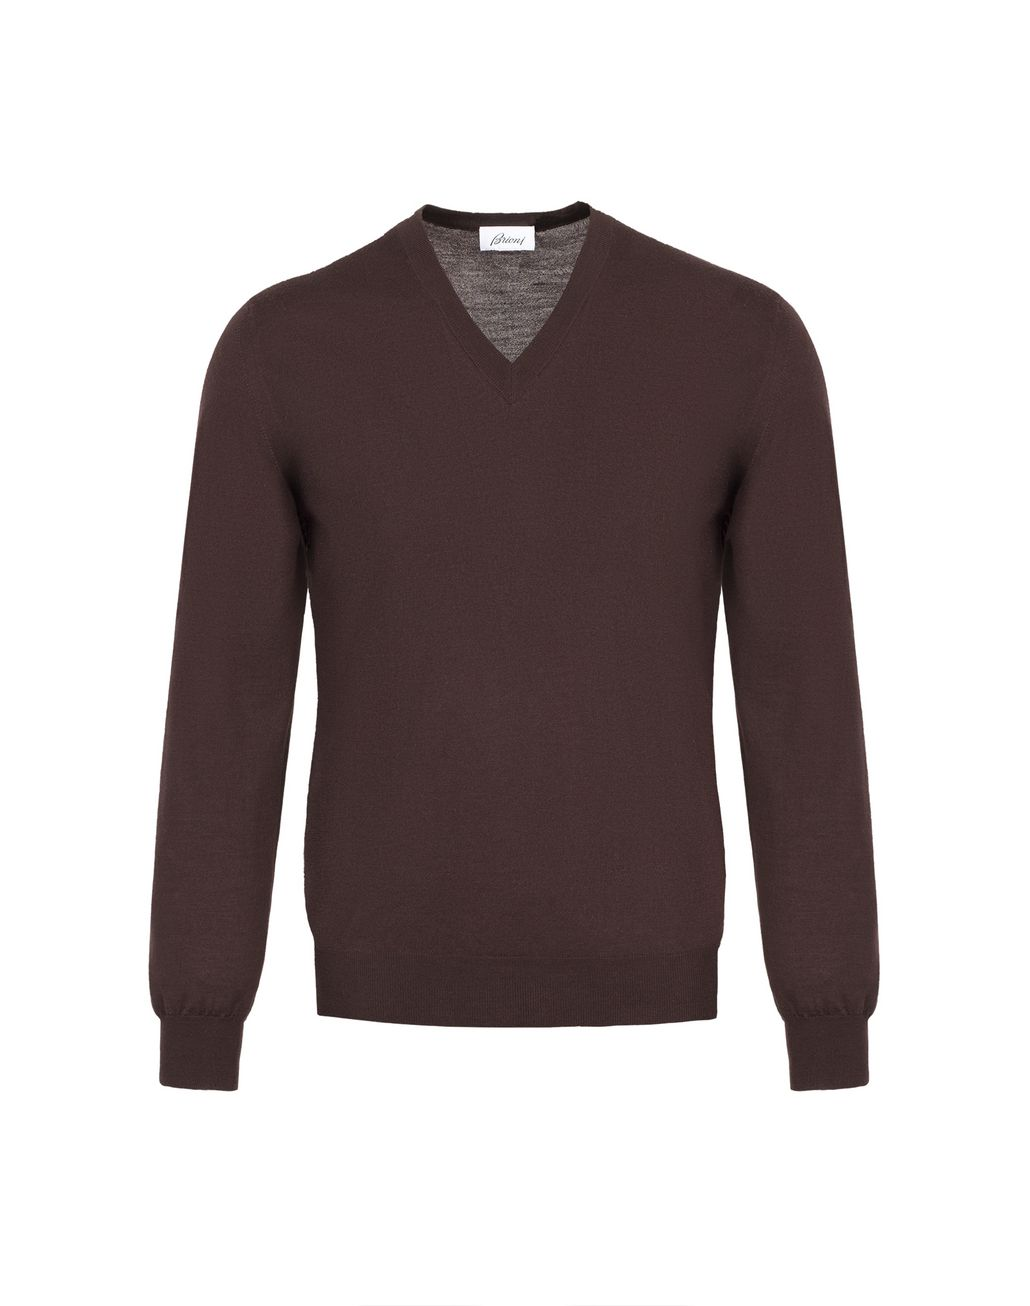 BRIONI Chocolate Brown V- Neck Sweater Knitwear Man f